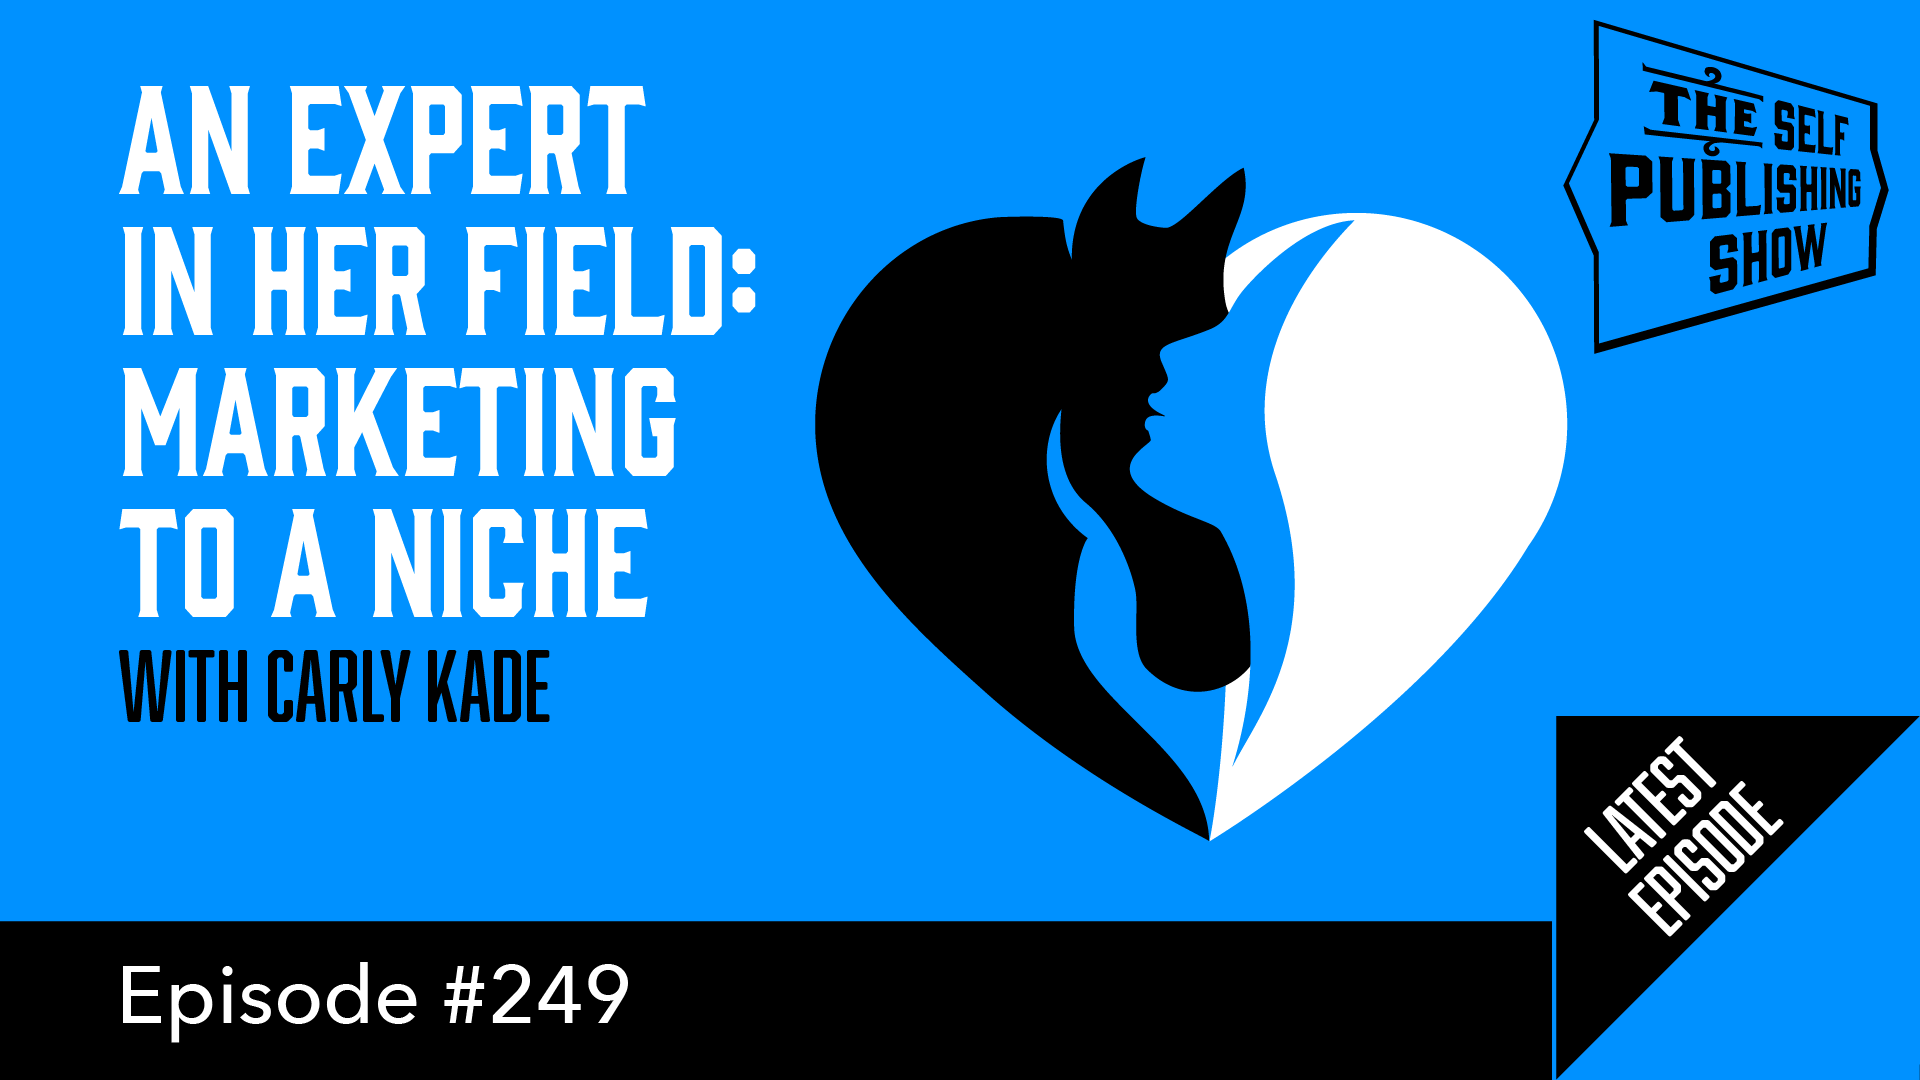 SPS-249: An Expert in Her Field: Marketing to a Niche – with Carly Kade